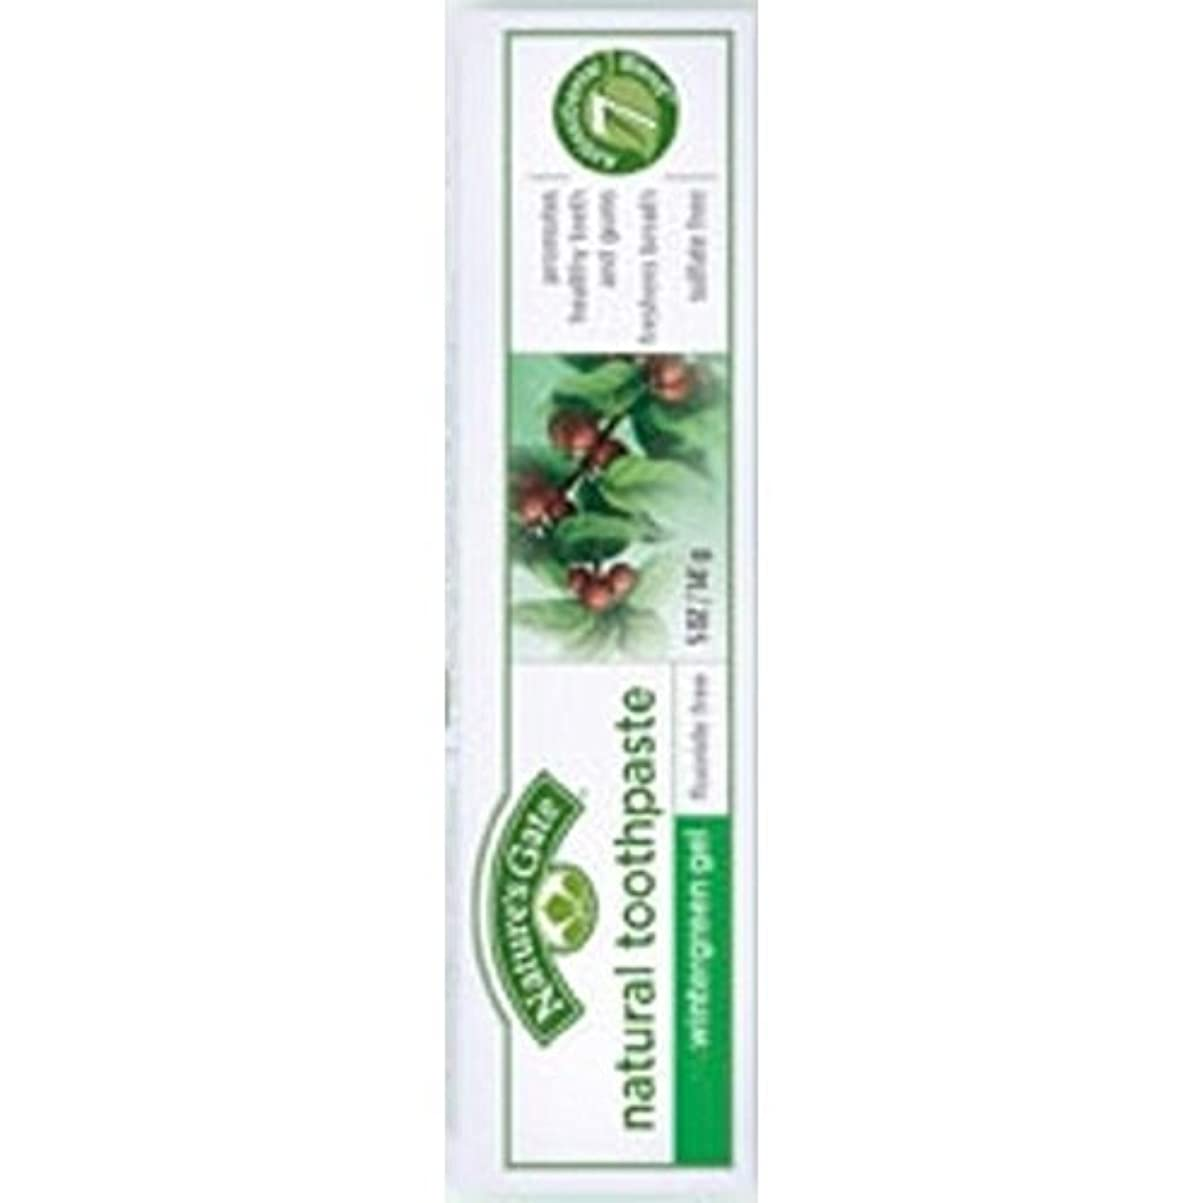 平行誘導有害Nature's Gate Natural Toothpaste Gel Flouride Free Wintergreen - 5 oz - Case of 6 by Nature's Gate [並行輸入品]